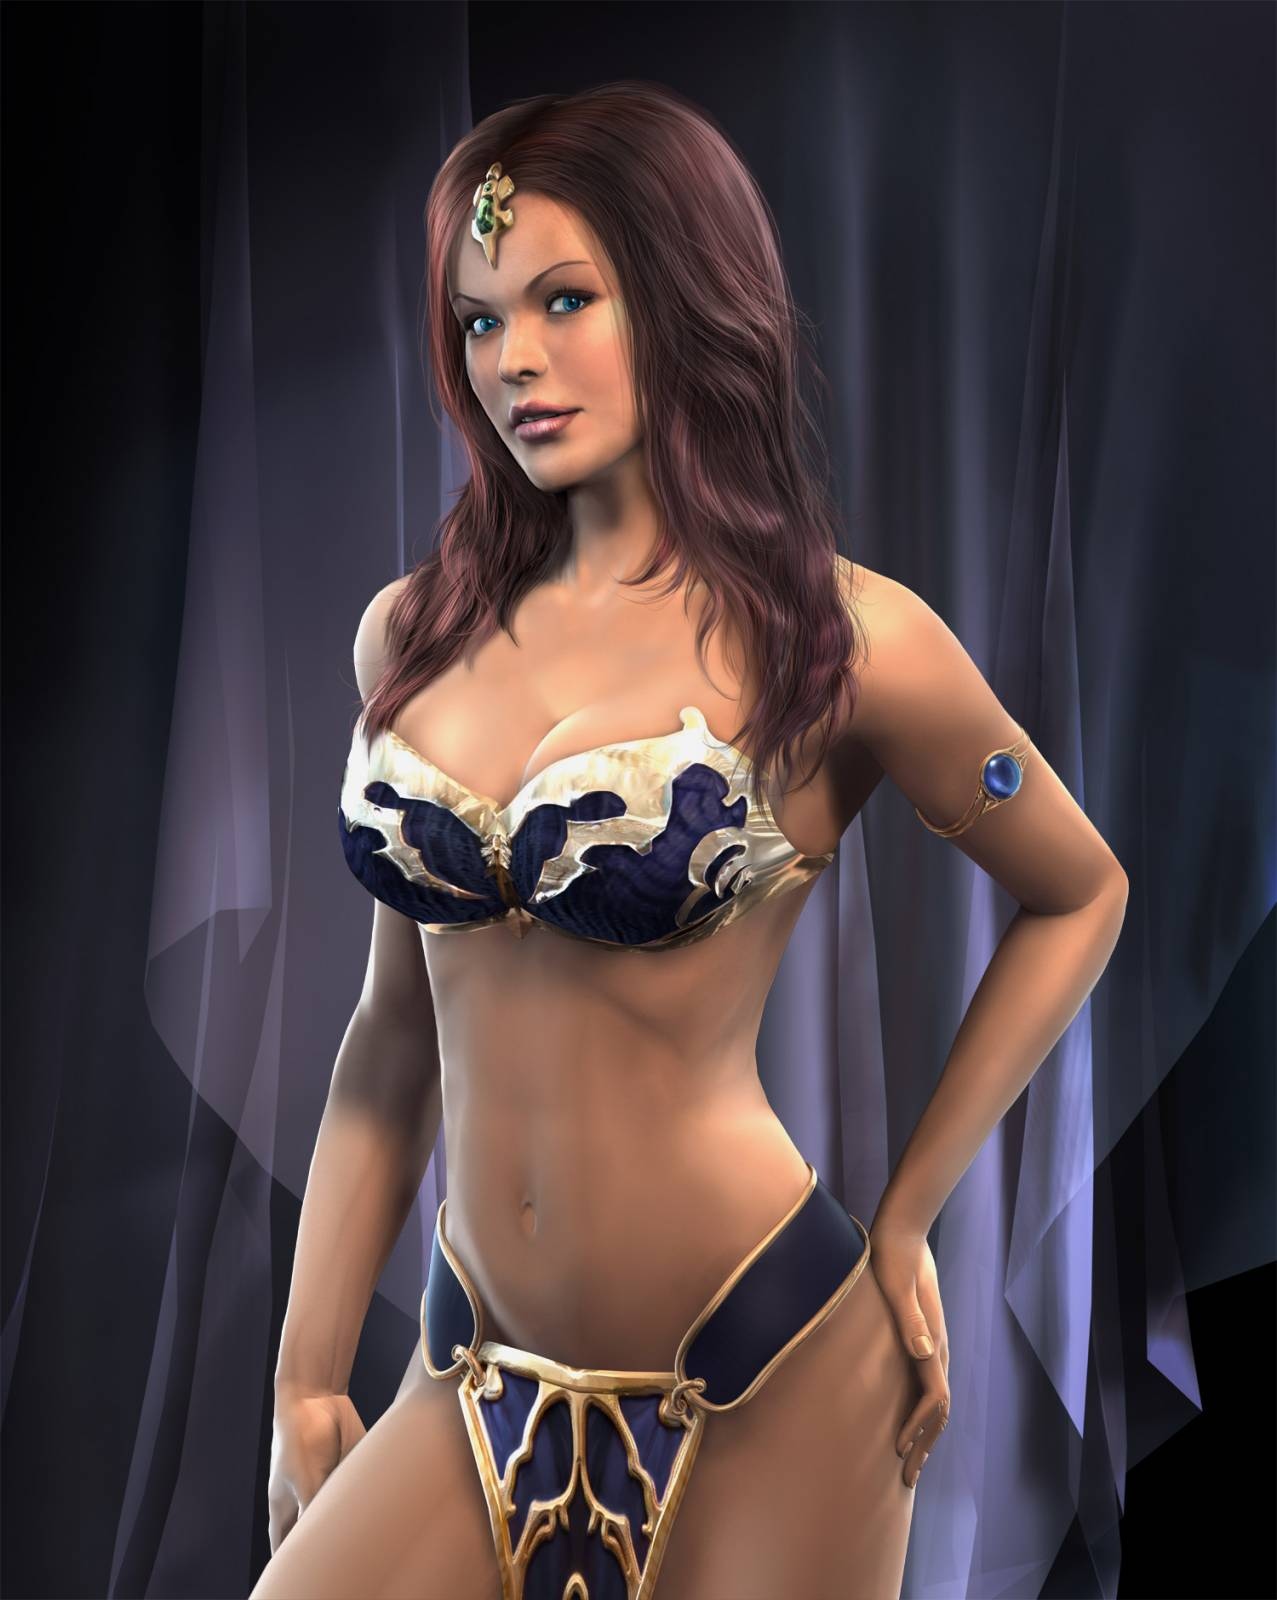 Everquest girls in costumes fucking image